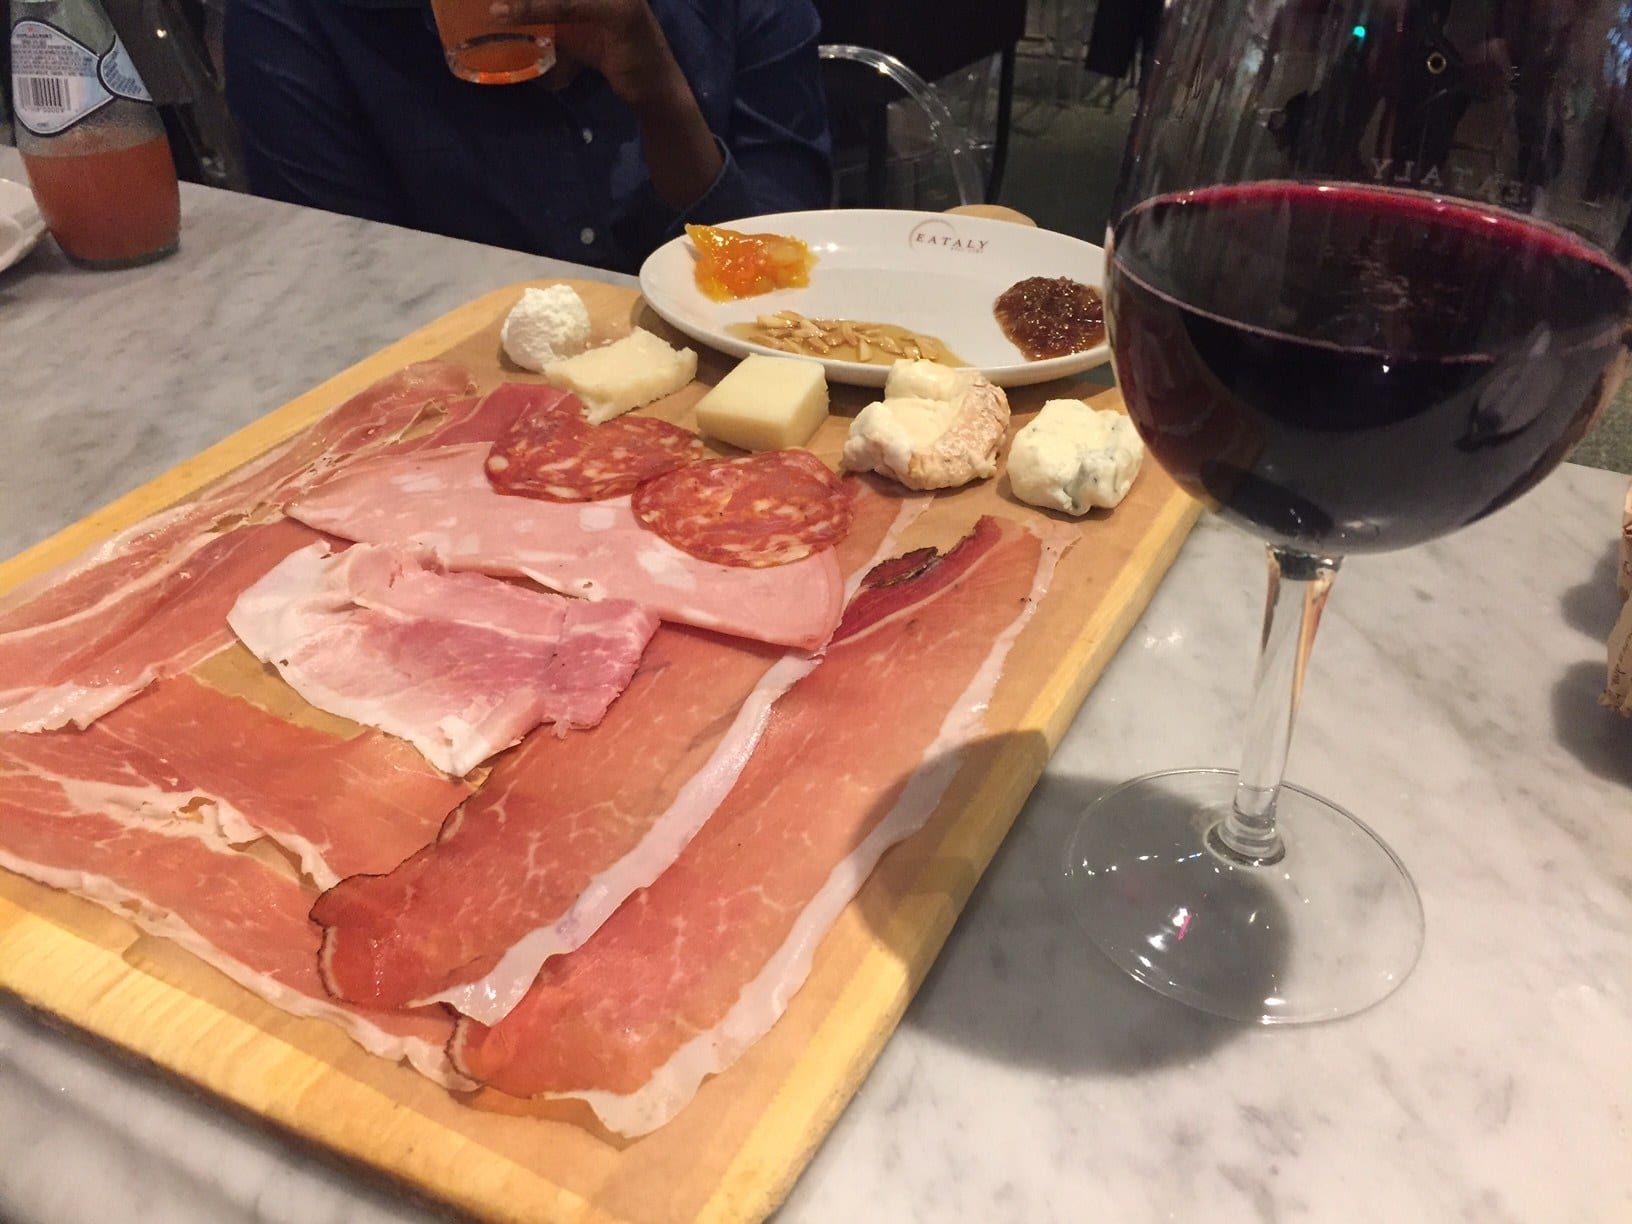 Eataly Prosciutto and Cheese